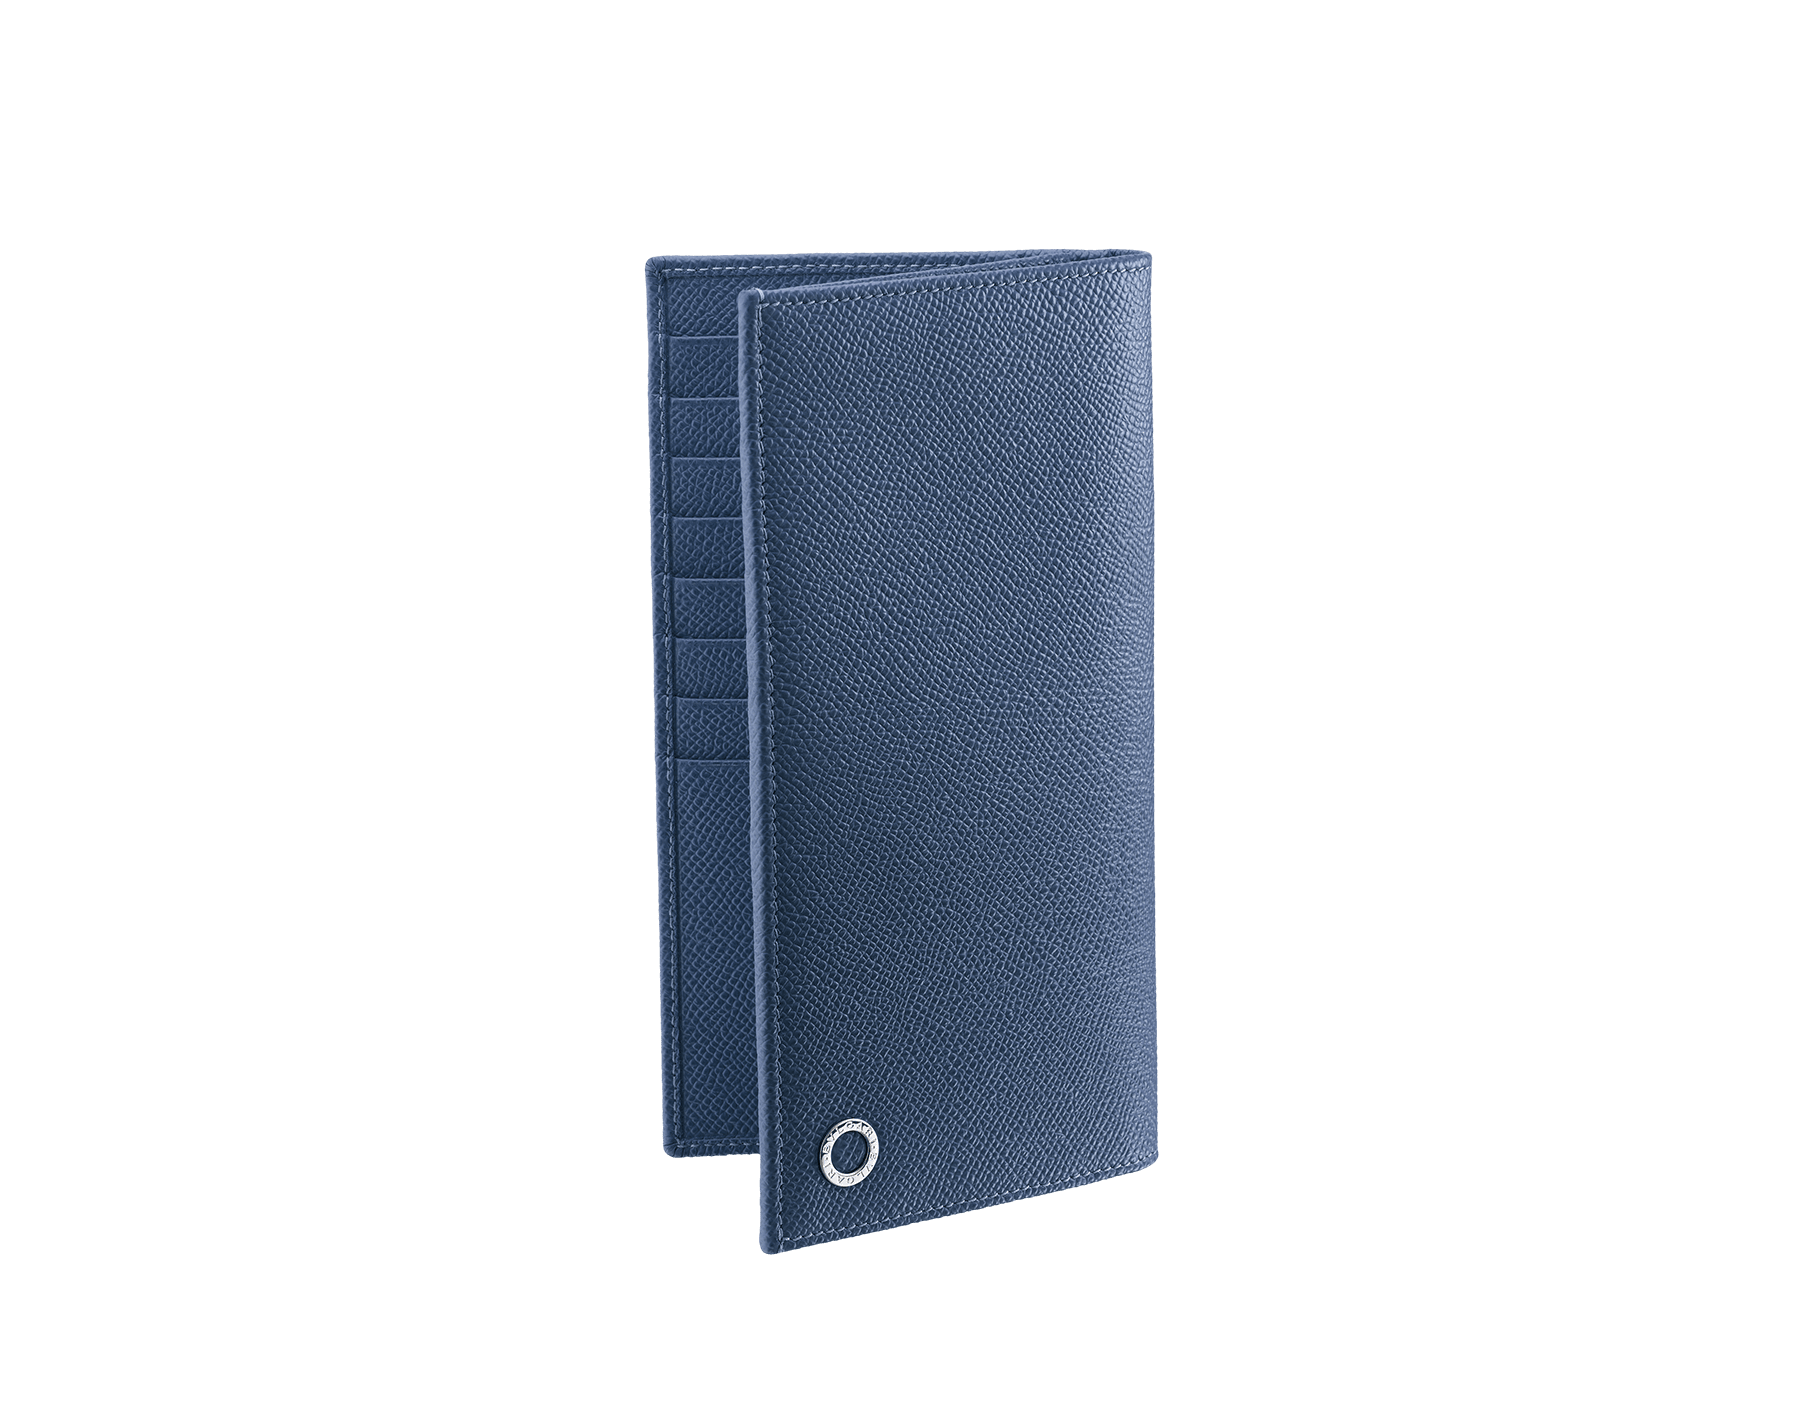 Wallet for yen in denim sapphire grain calf leather with brass palladium plated hardware and iconic BVLGARI BVLGARI motif. 285738 image 1